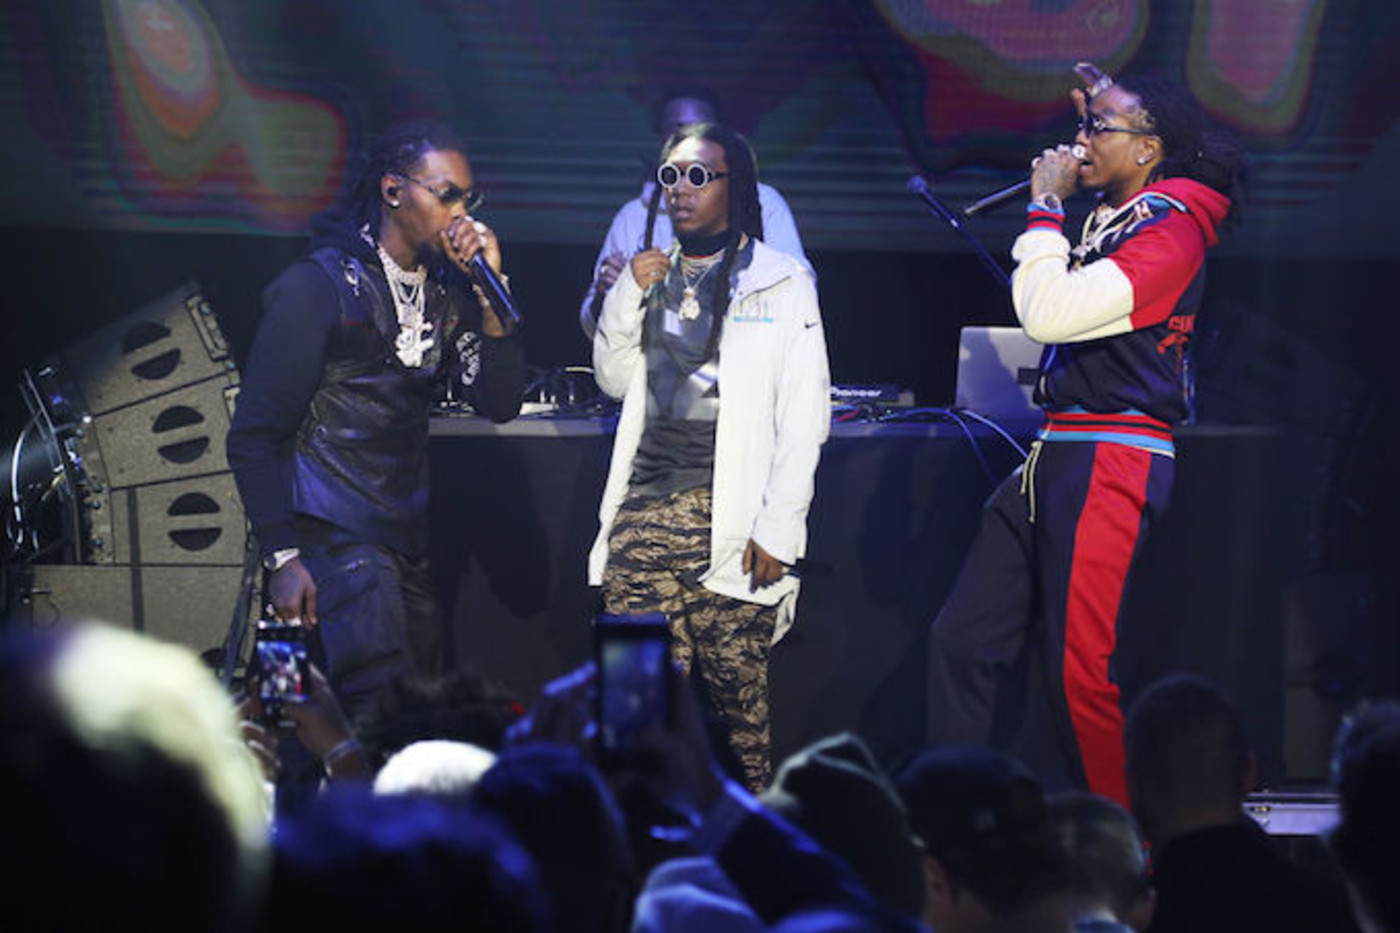 This is a picture of Migos.